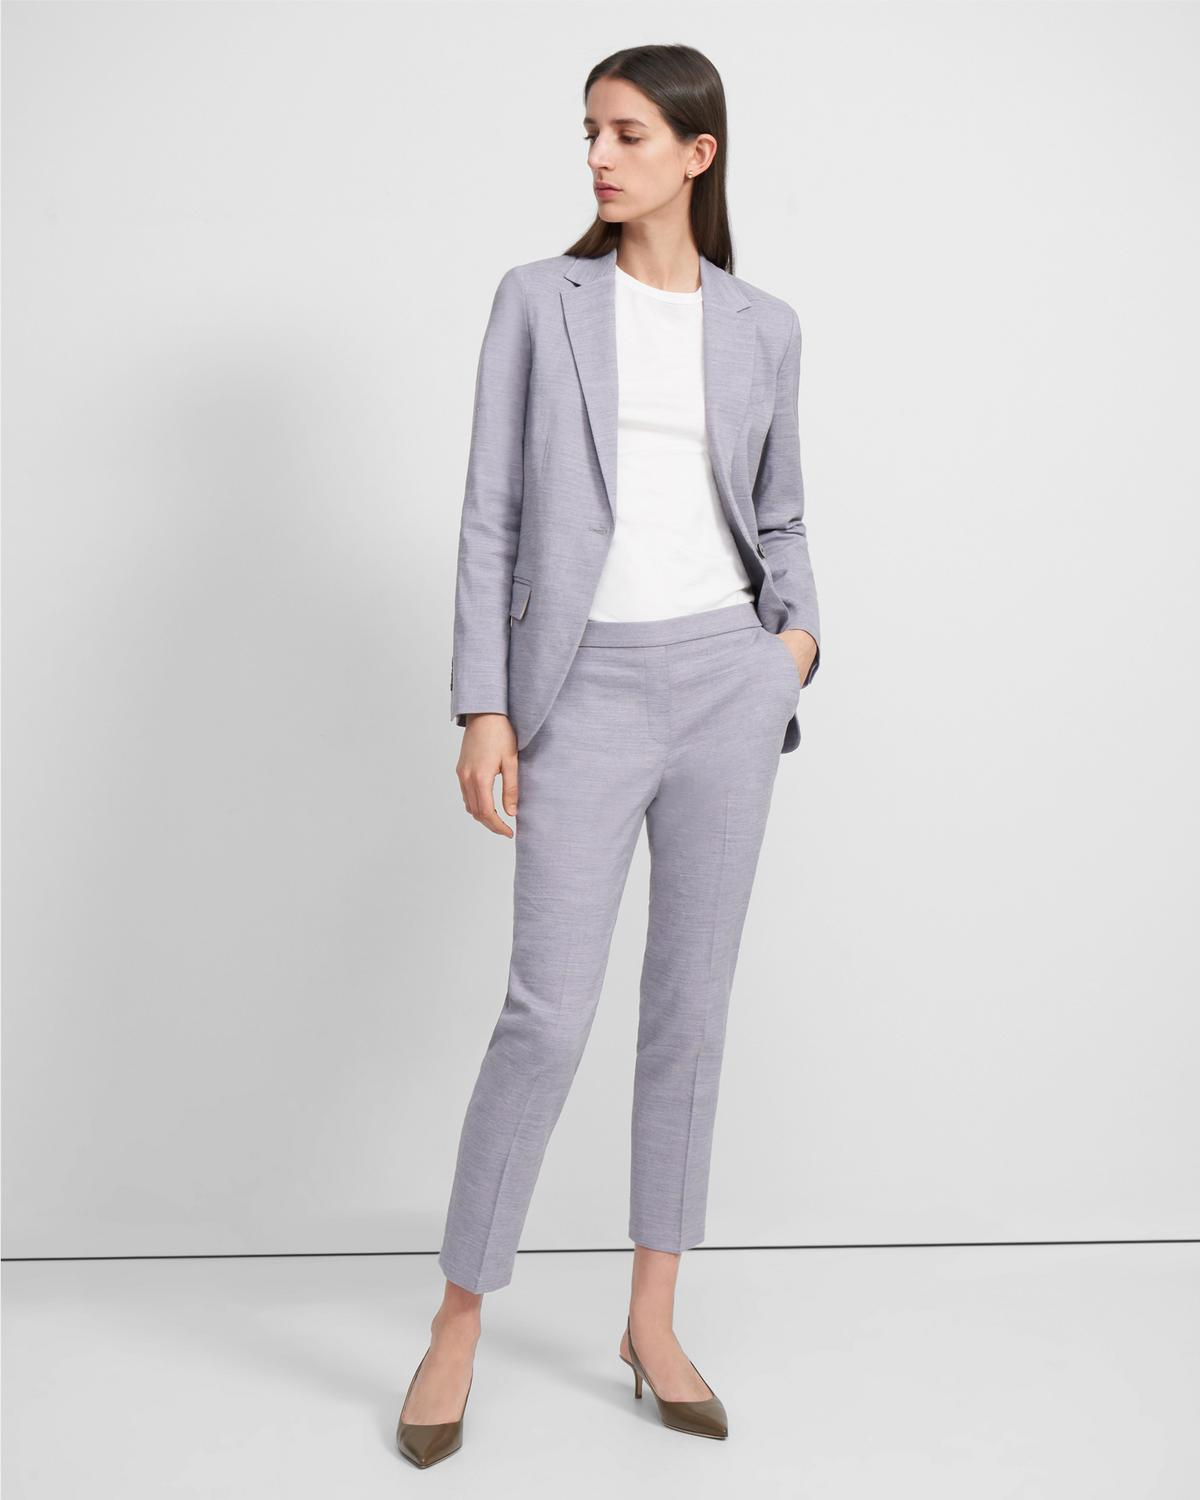 Staple Blazer in Textured Good Linen